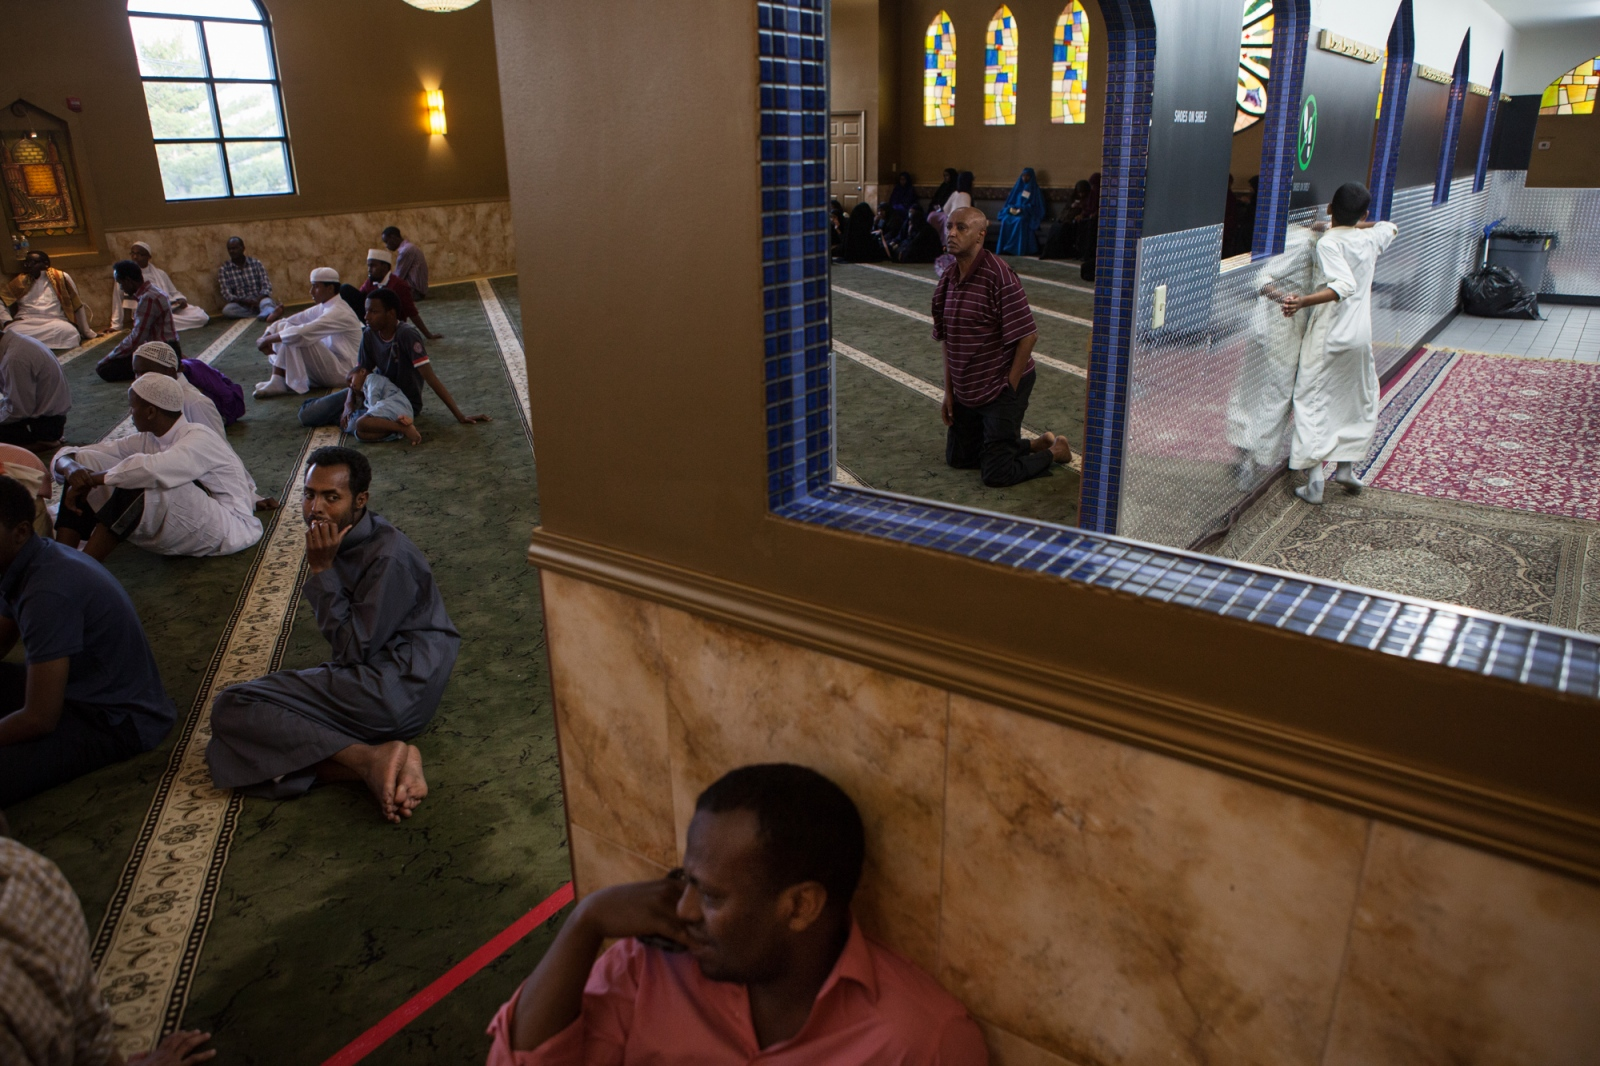 Karmel, one of two major Somali malls in Minneapolis, hosted a Quran reading competition for children in its upstairs mosque — the event drew Somali families from all over the country.